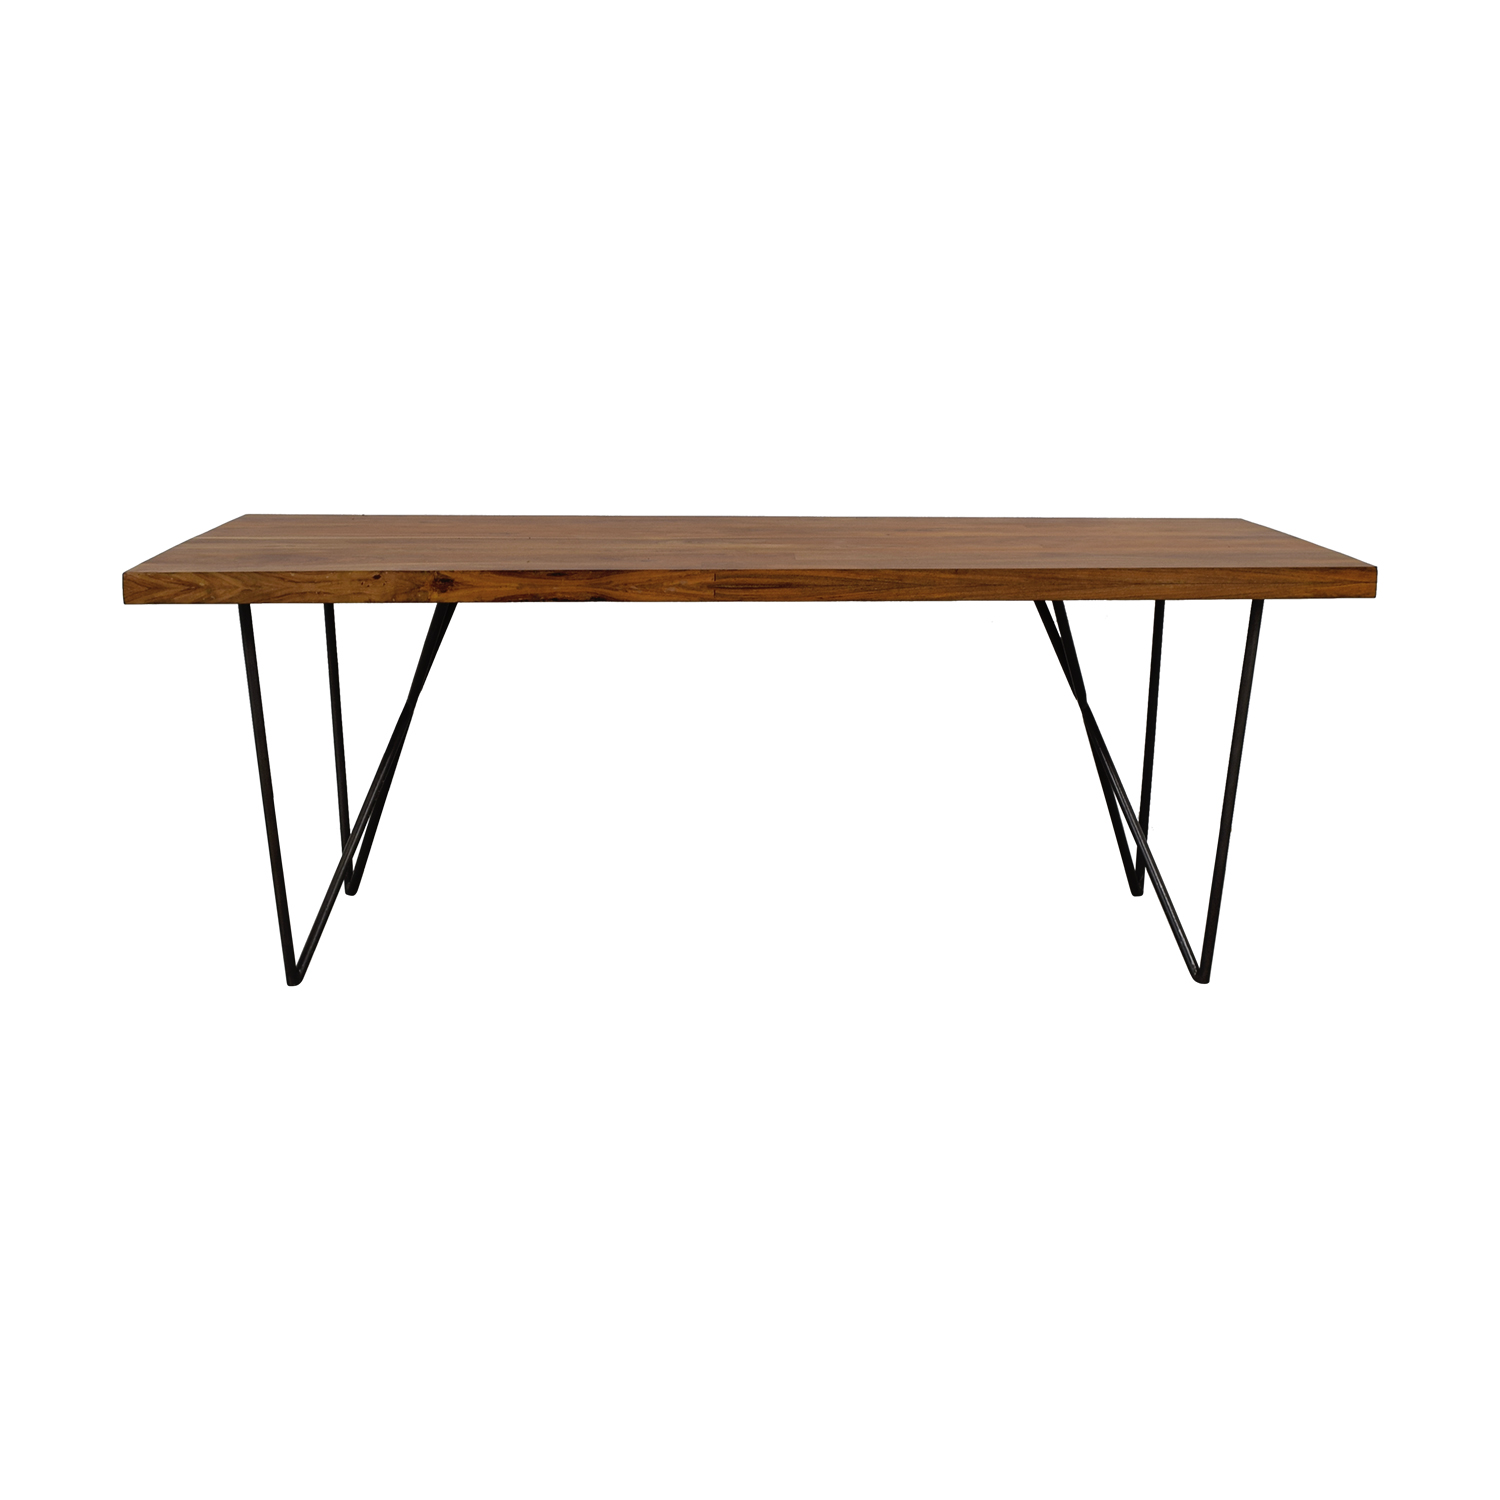 CB2 CB2 Dylan Wood Dining Table price